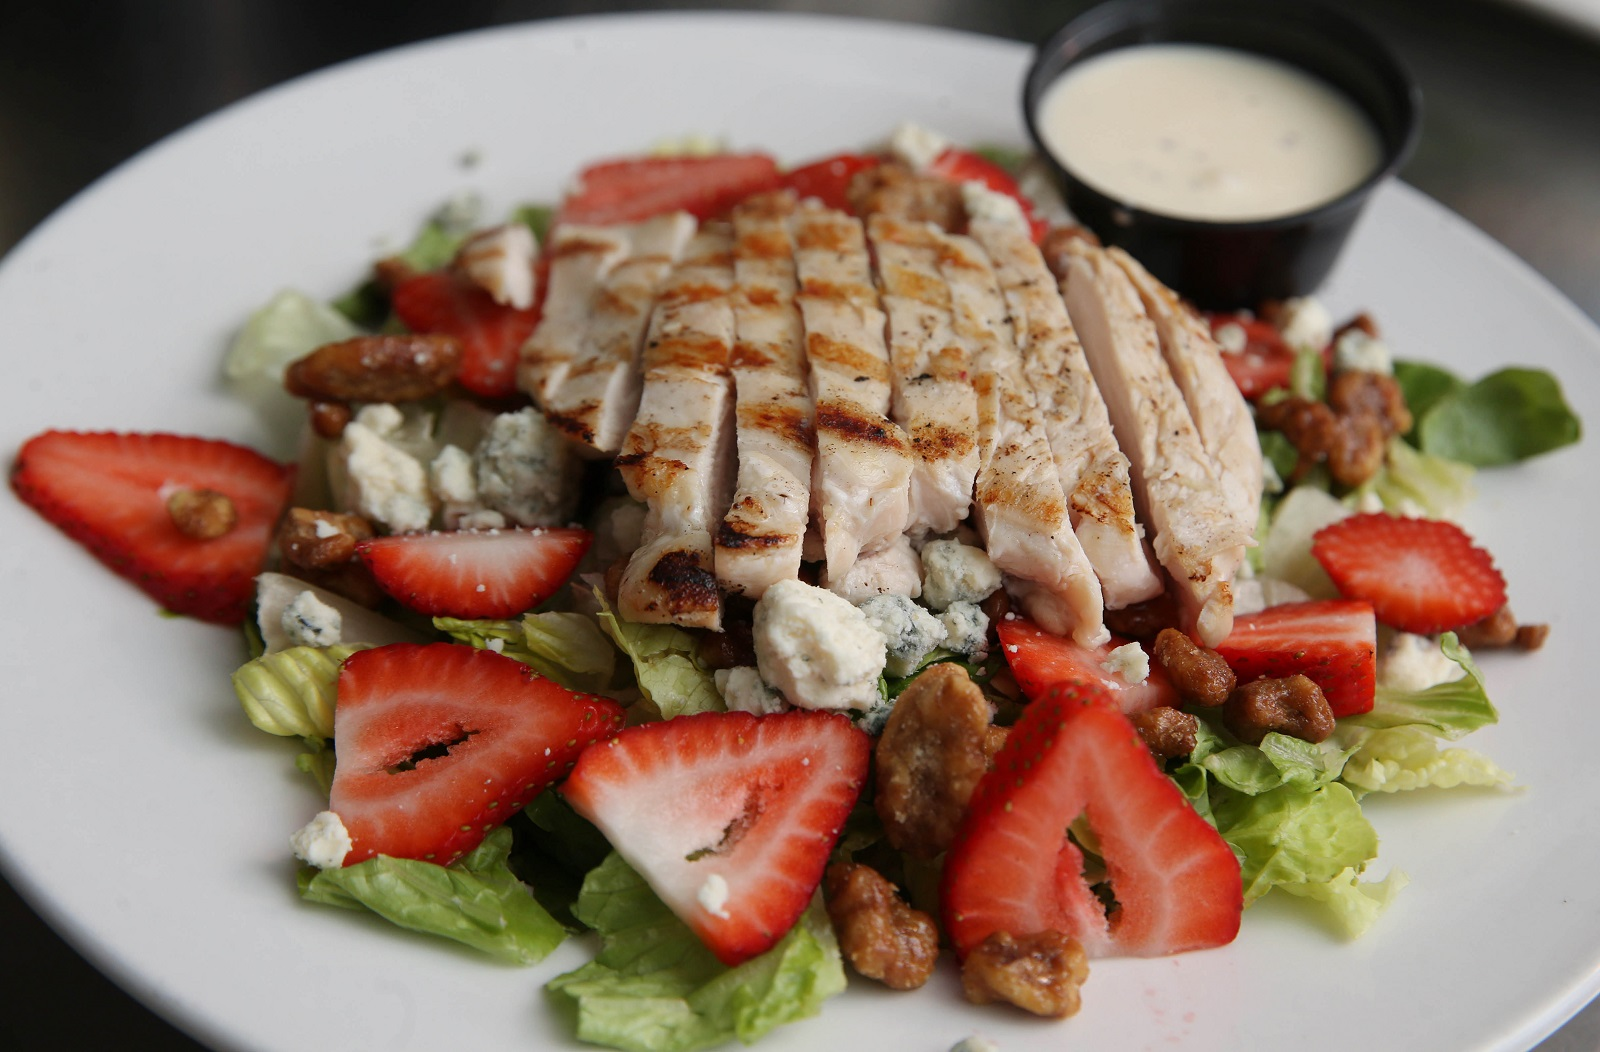 French Pub's grilled chicken salad with strawberries and bleu cheese. (Sharon Cantillon/Buffalo News)